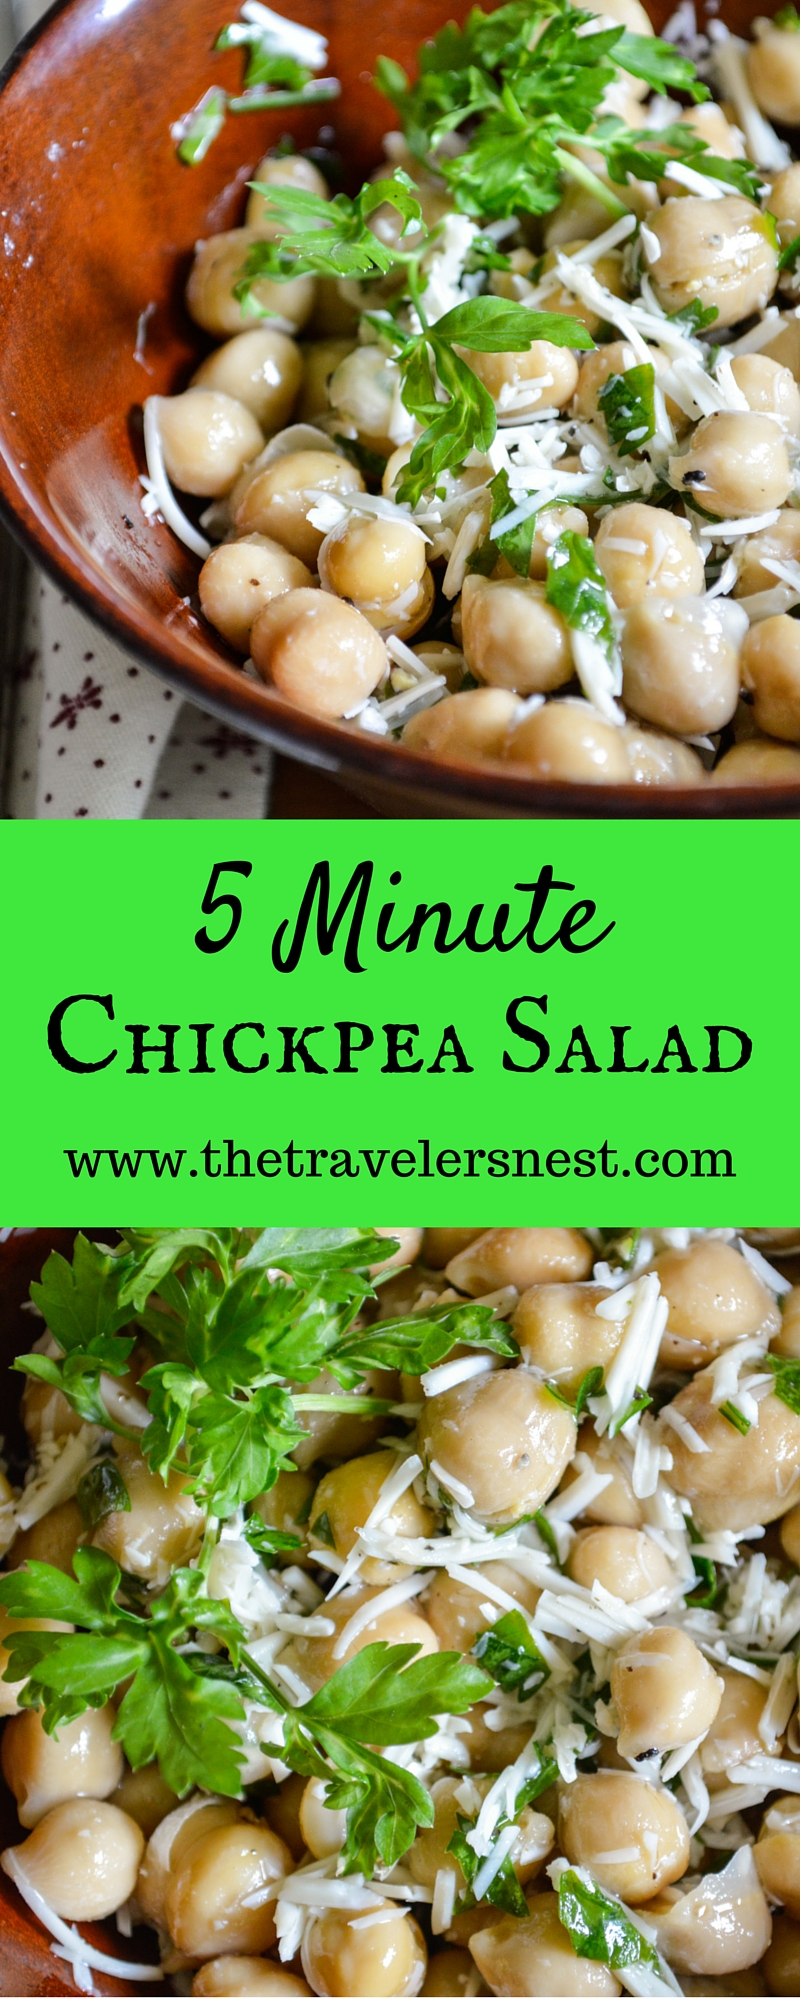 5 Minute Chickpea Salad